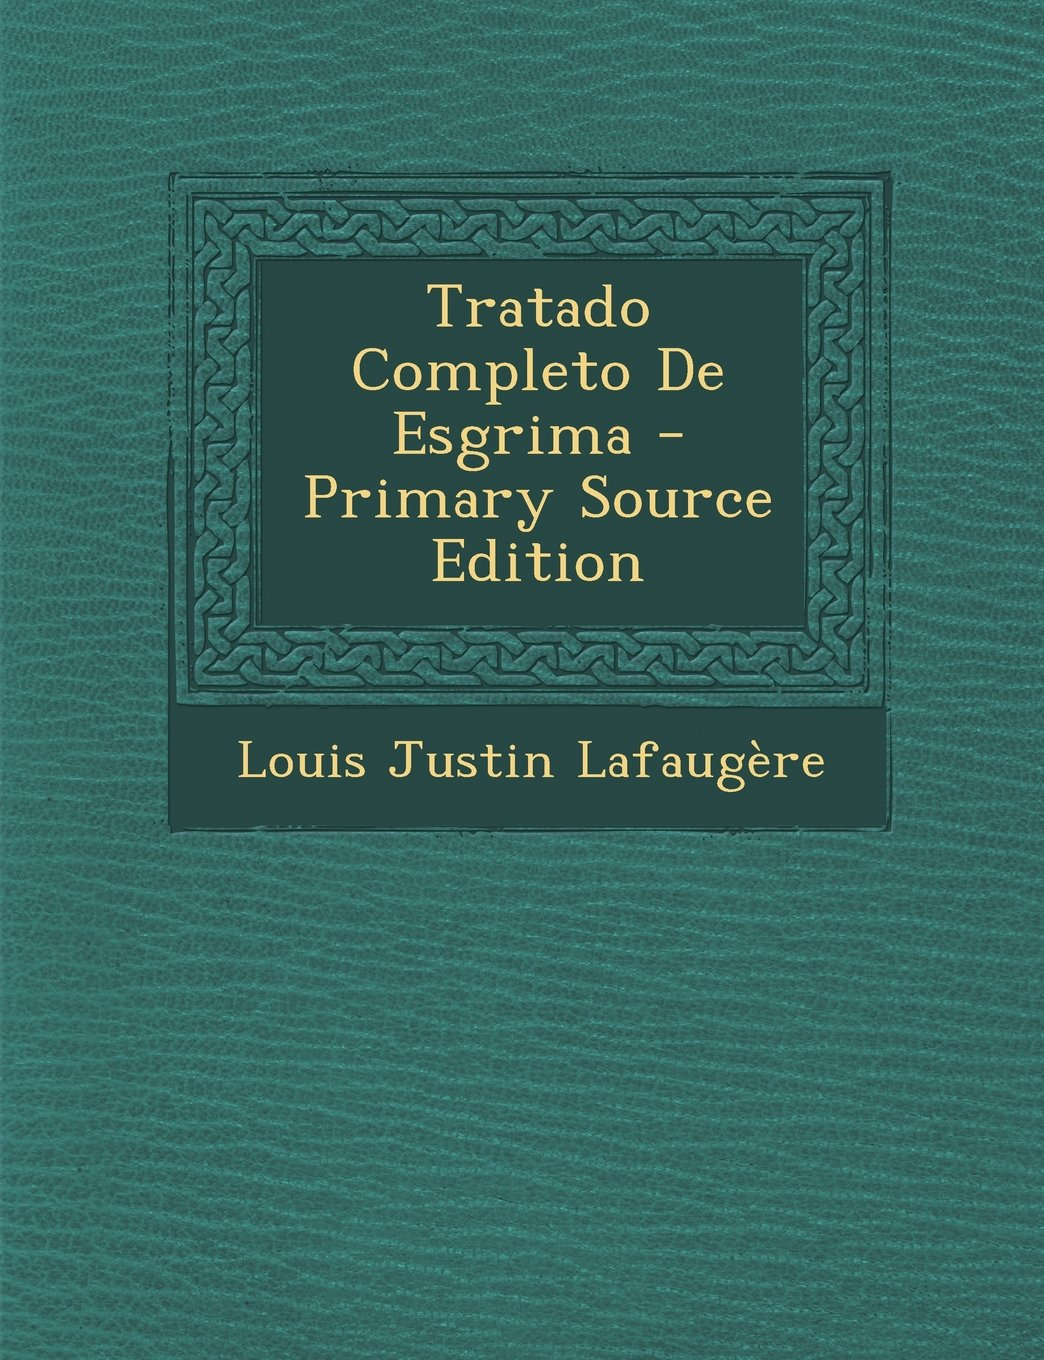 Download Tratado Completo de Esgrima - Primary Source Edition (Spanish Edition) PDF